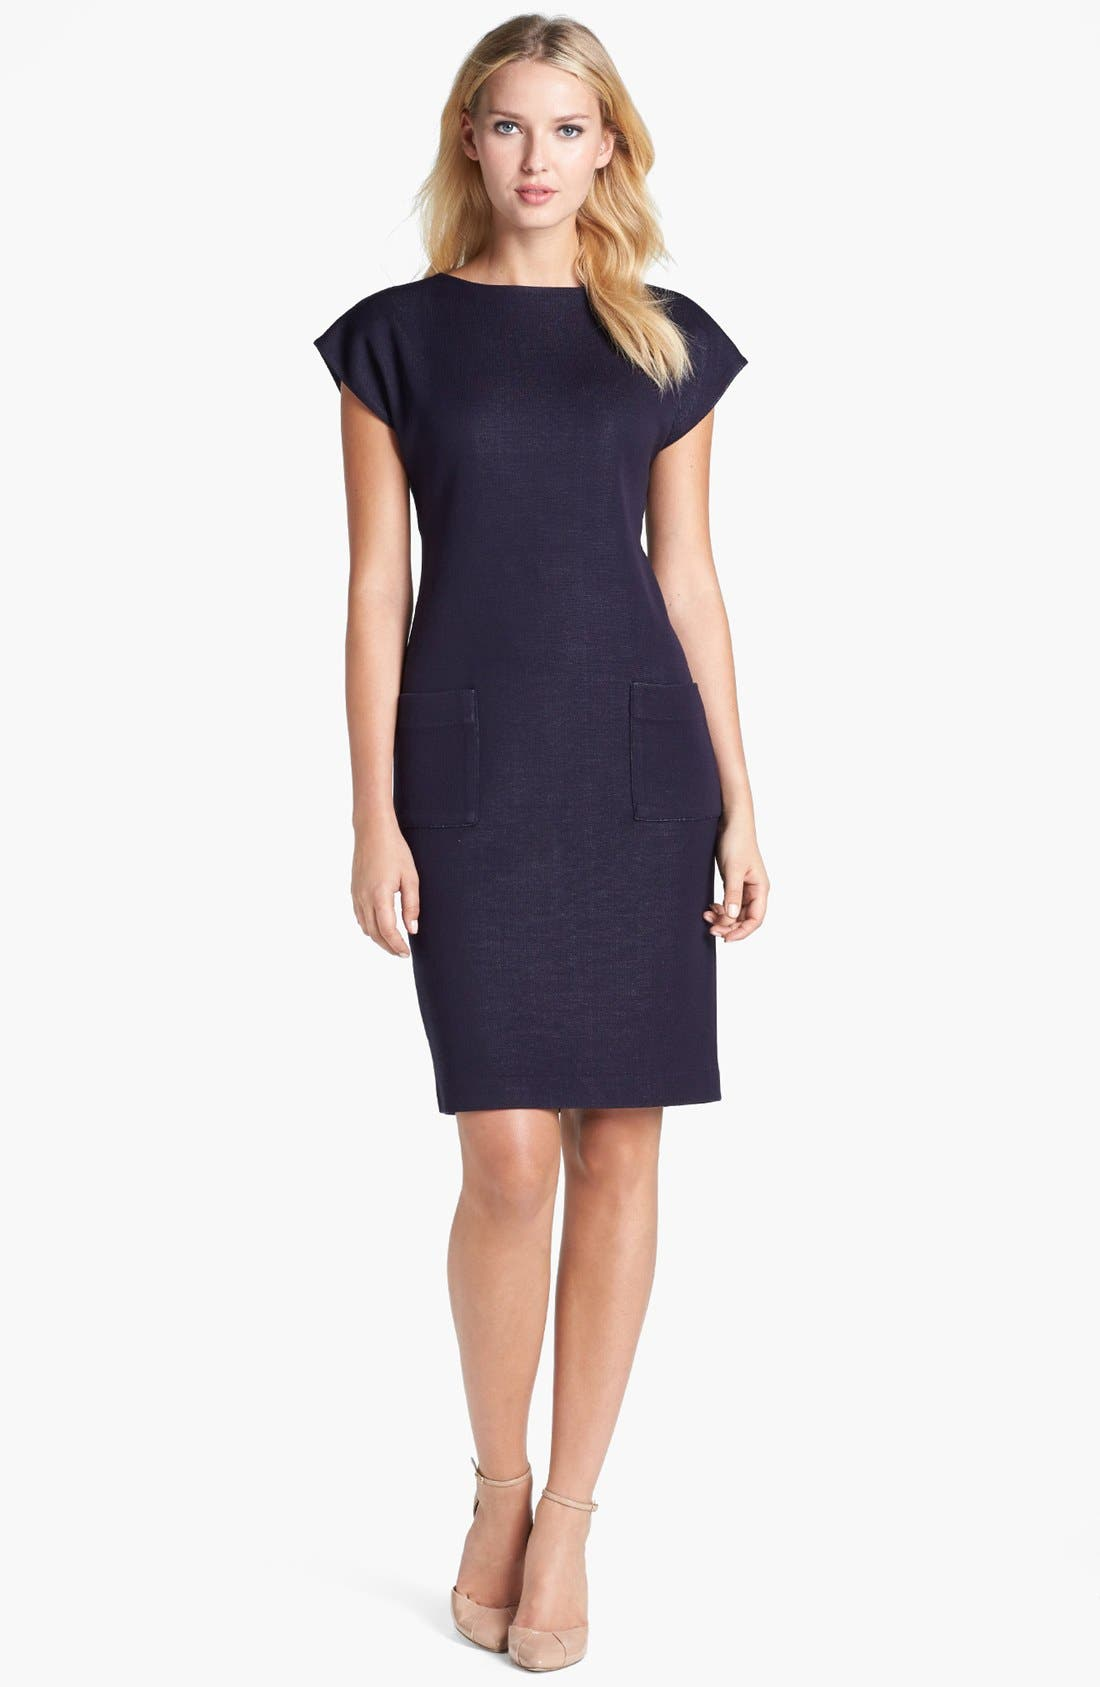 Alternate Image 1 Selected - Exclusively Misook 'Ina' Cap Sleeve Knit Dress